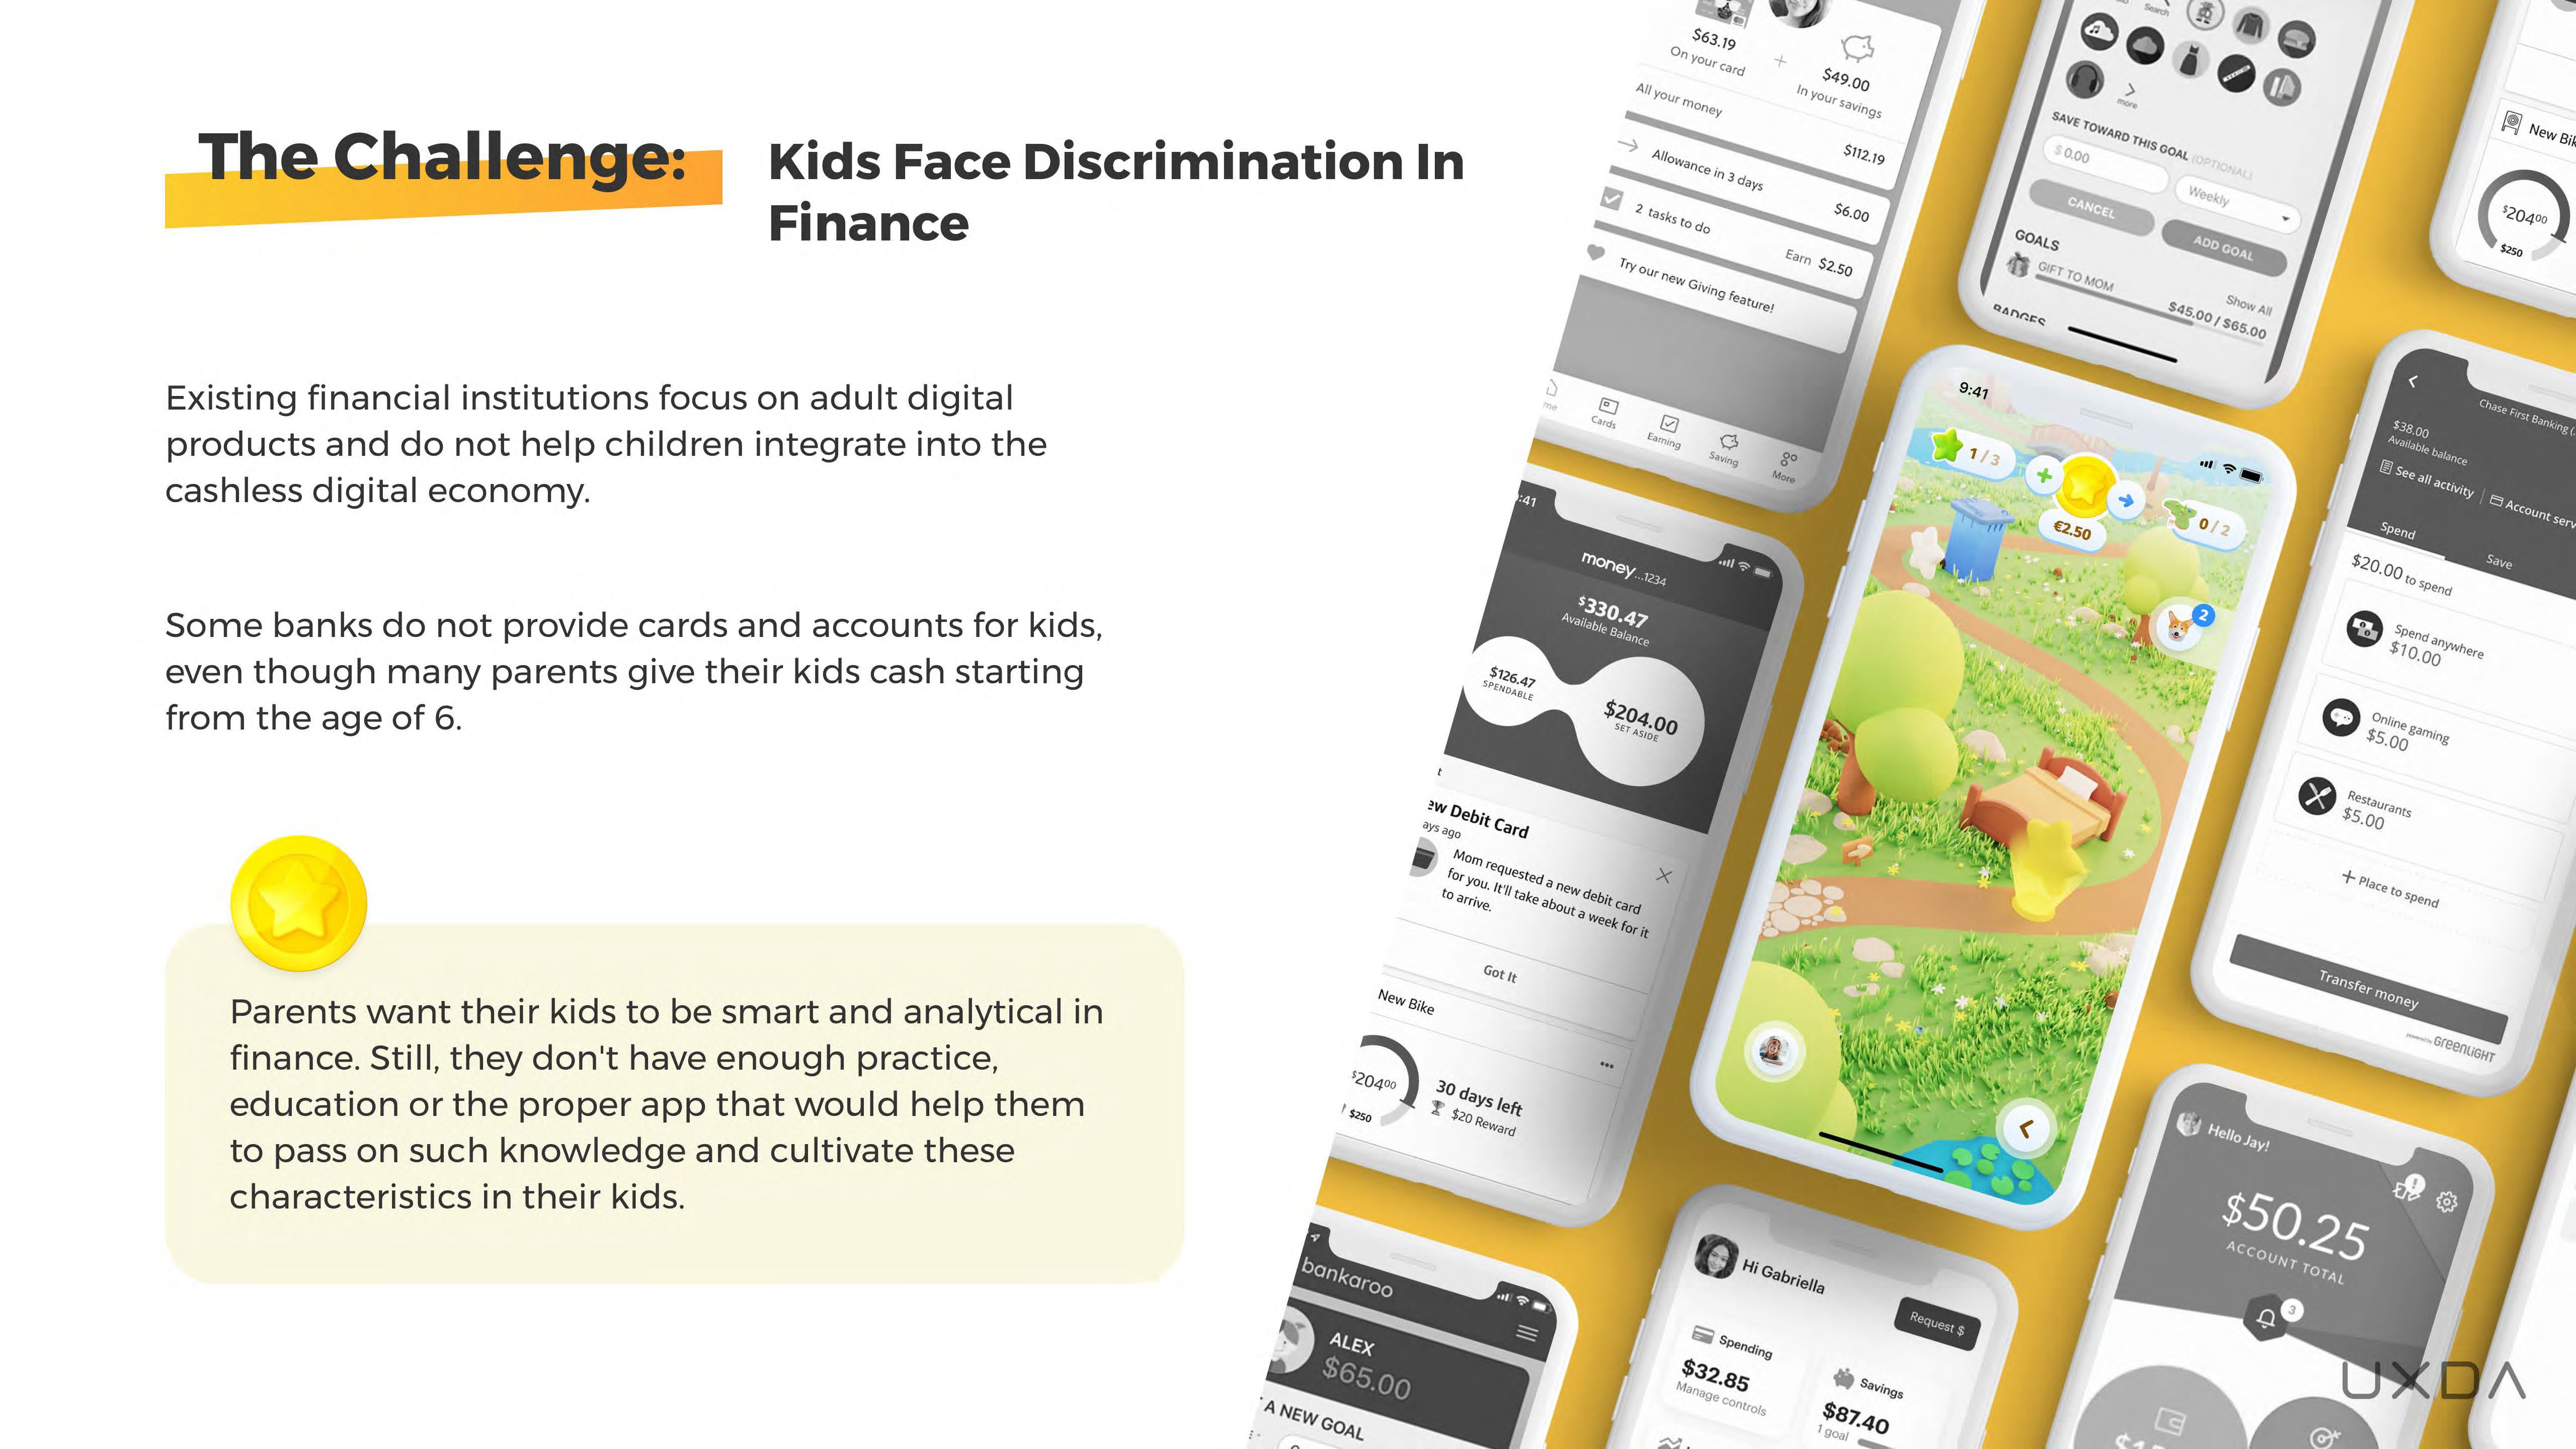 kids-banking-app-UX-design-concept-by-UXDA-2-1632140669.png